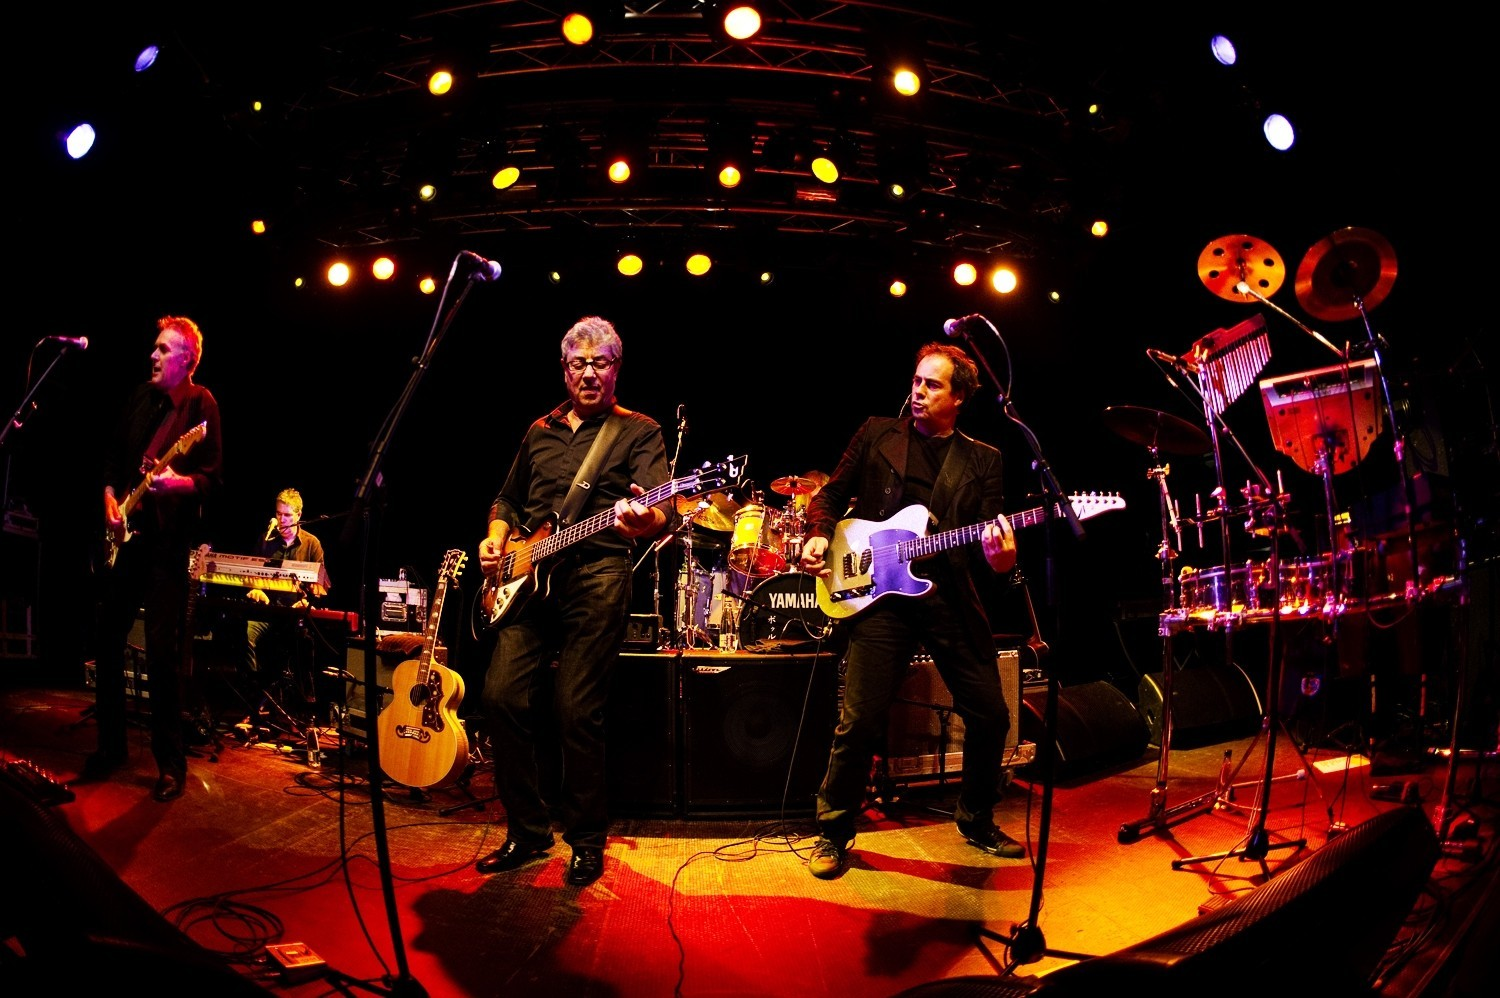 10cc live and going for it – as they will in Bradford this October